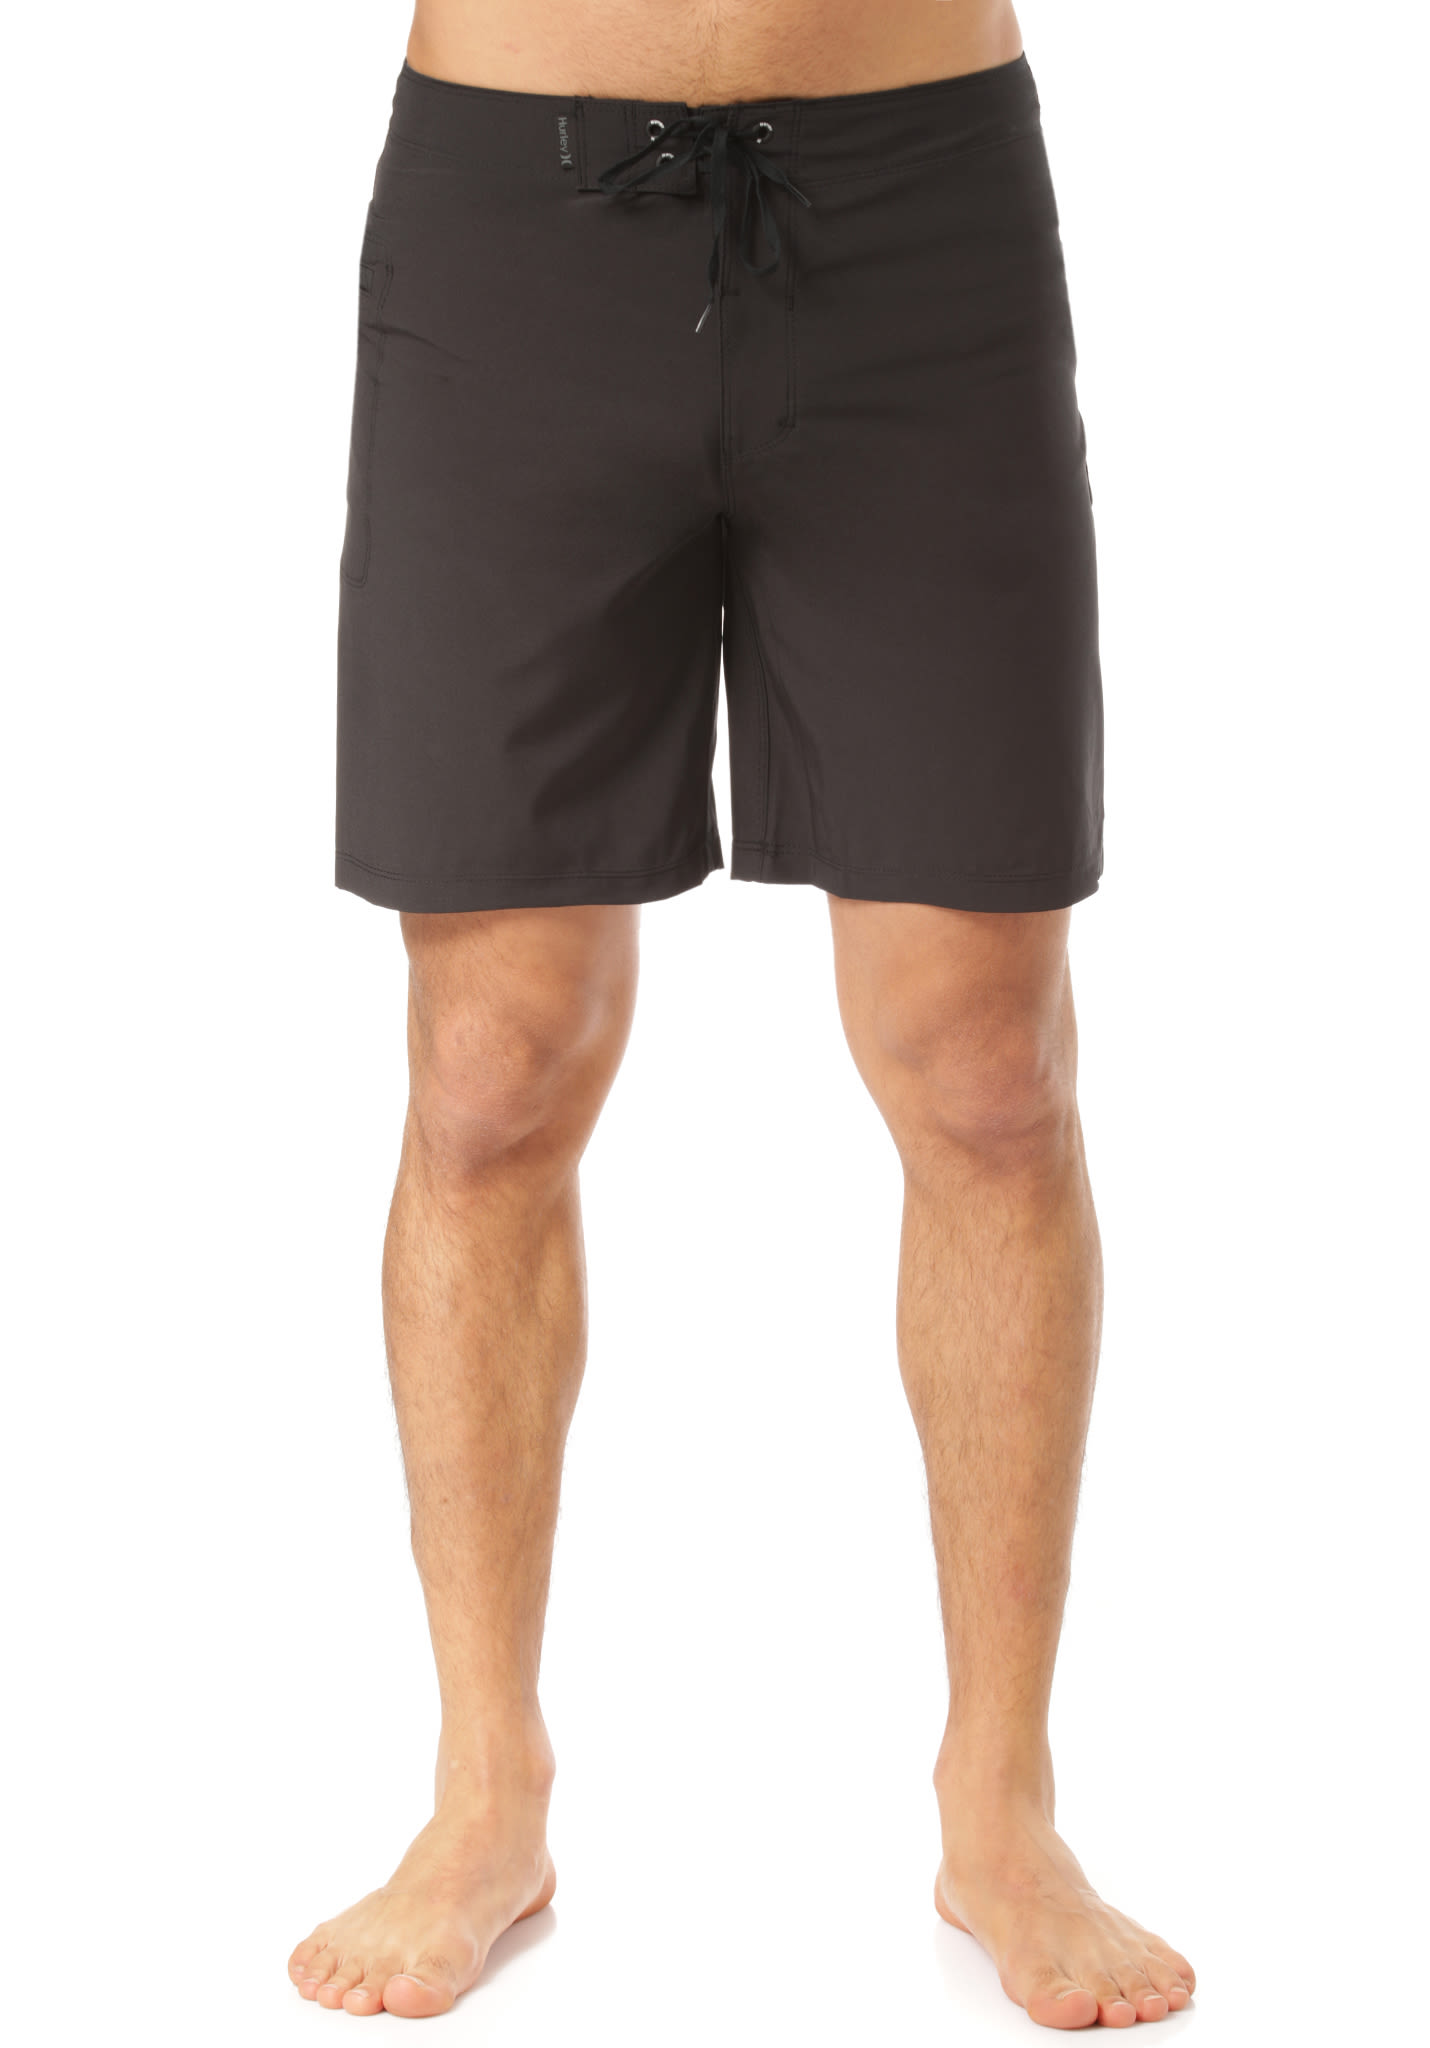 2976c4aad8 Hurley Phantom One & Only 18' - Boardshorts for Men - Black - Planet Sports